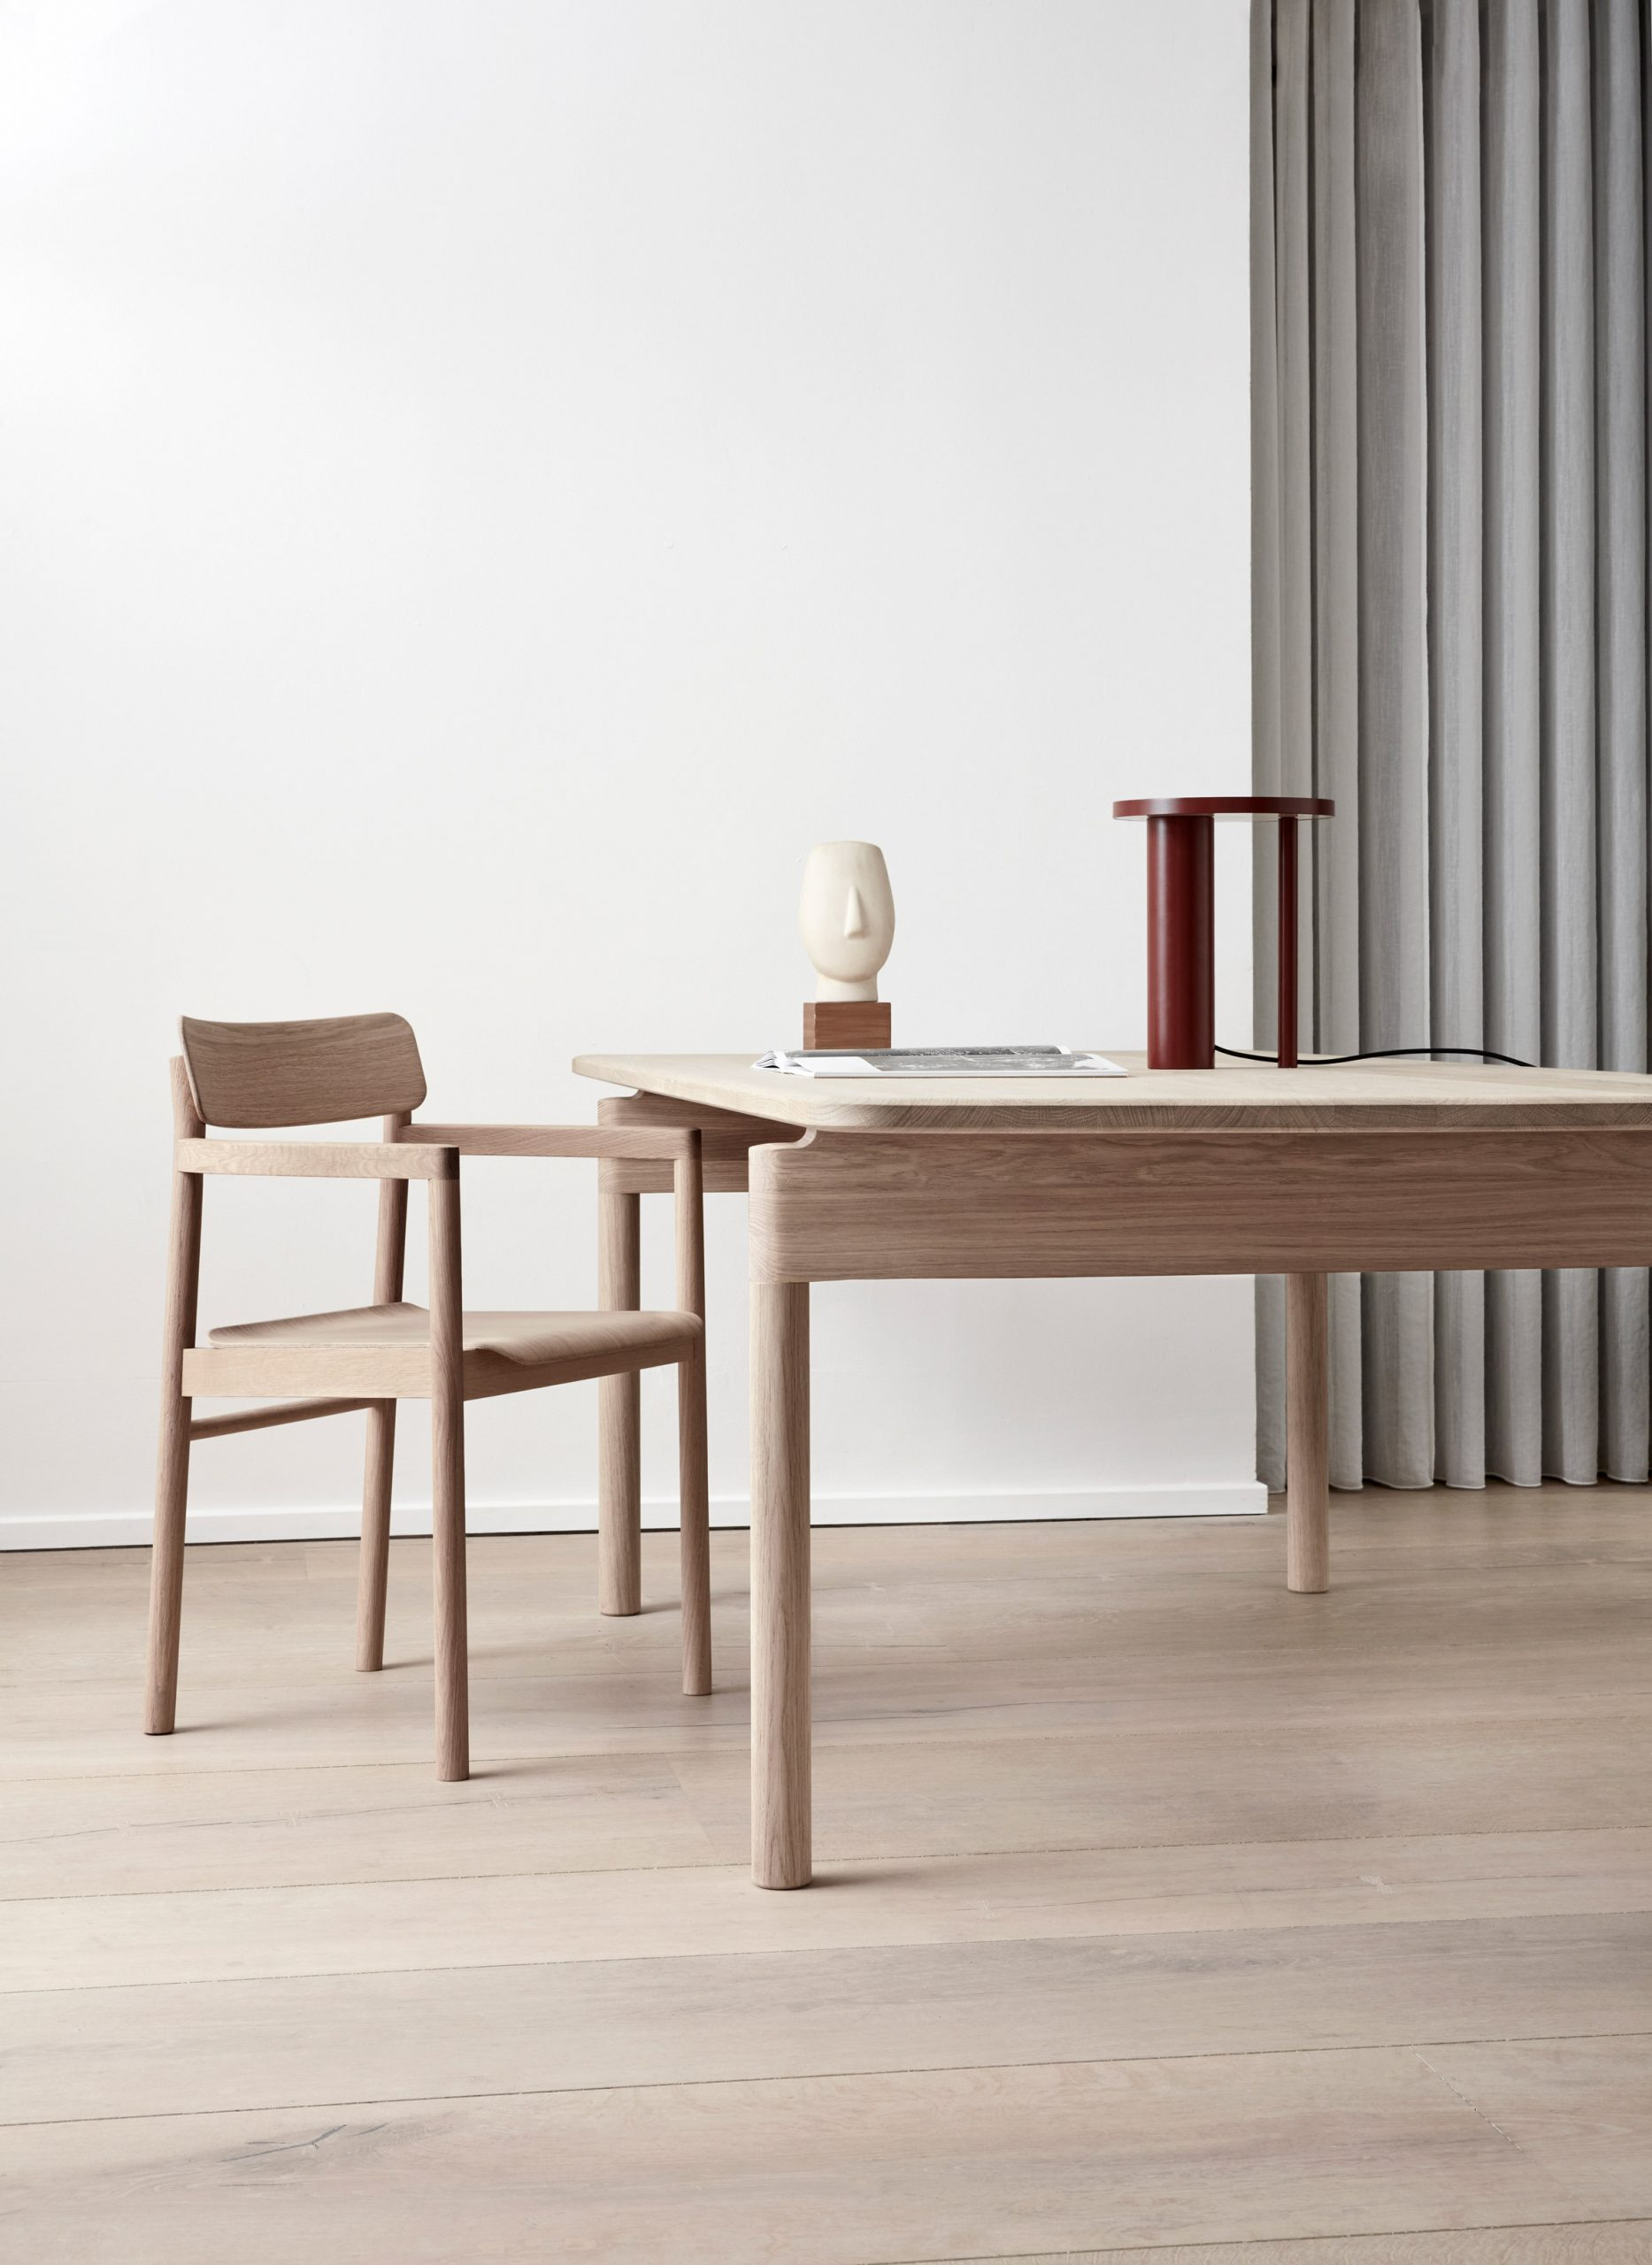 Post Chair and Post Table by Cecilie Manz for Fredericia's Post Collection